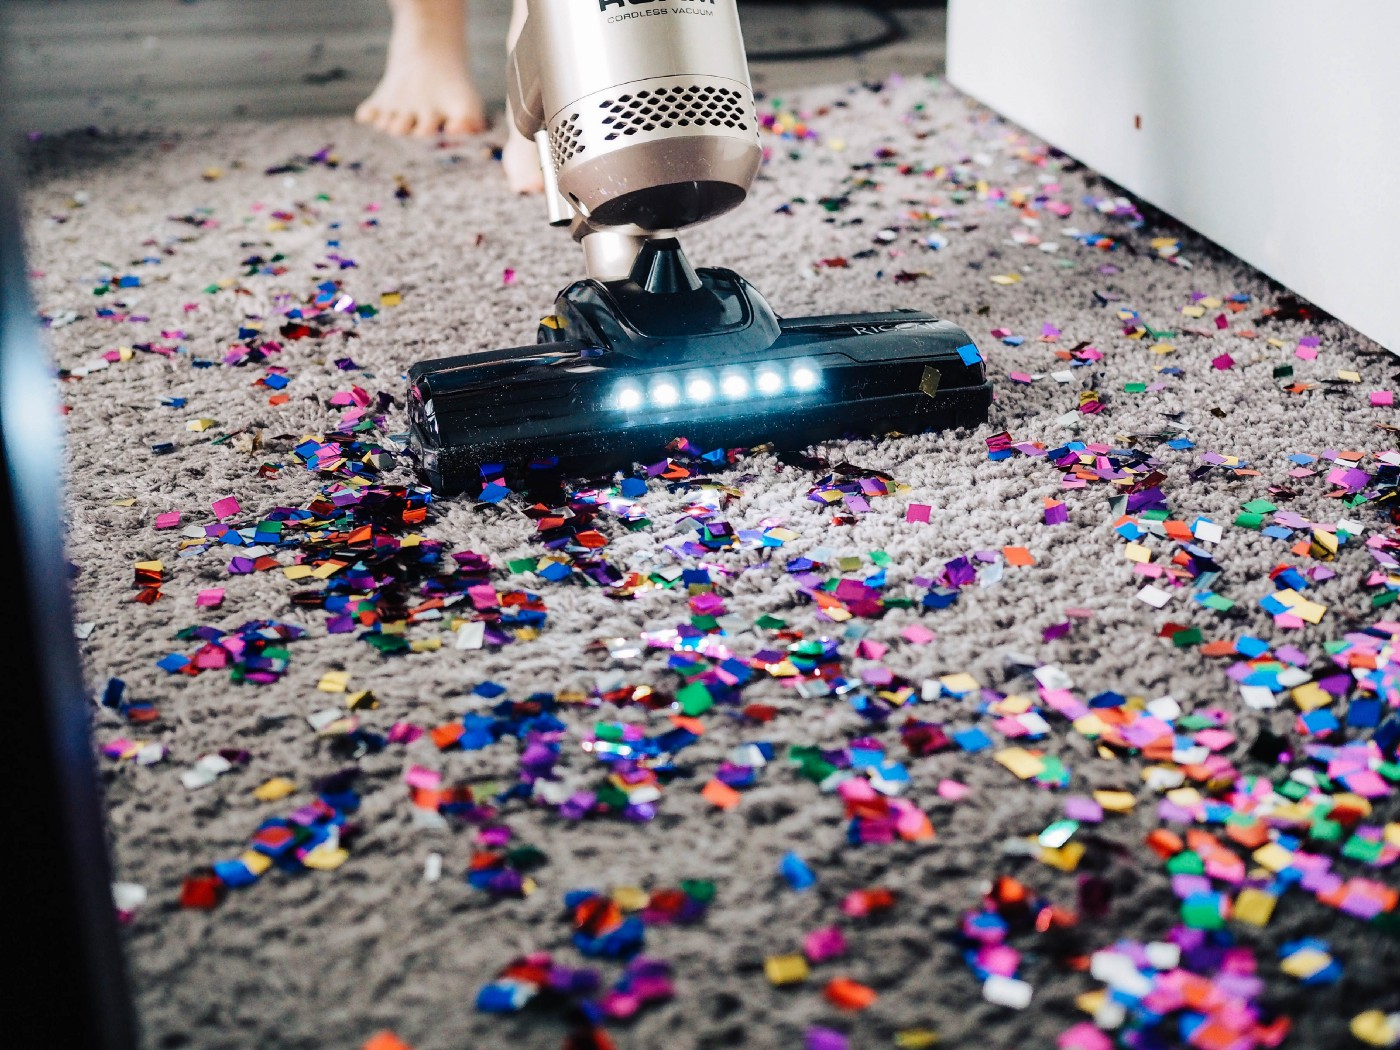 A vacuum cleaner vacuuming confetti and other colorful bits off of a carpet